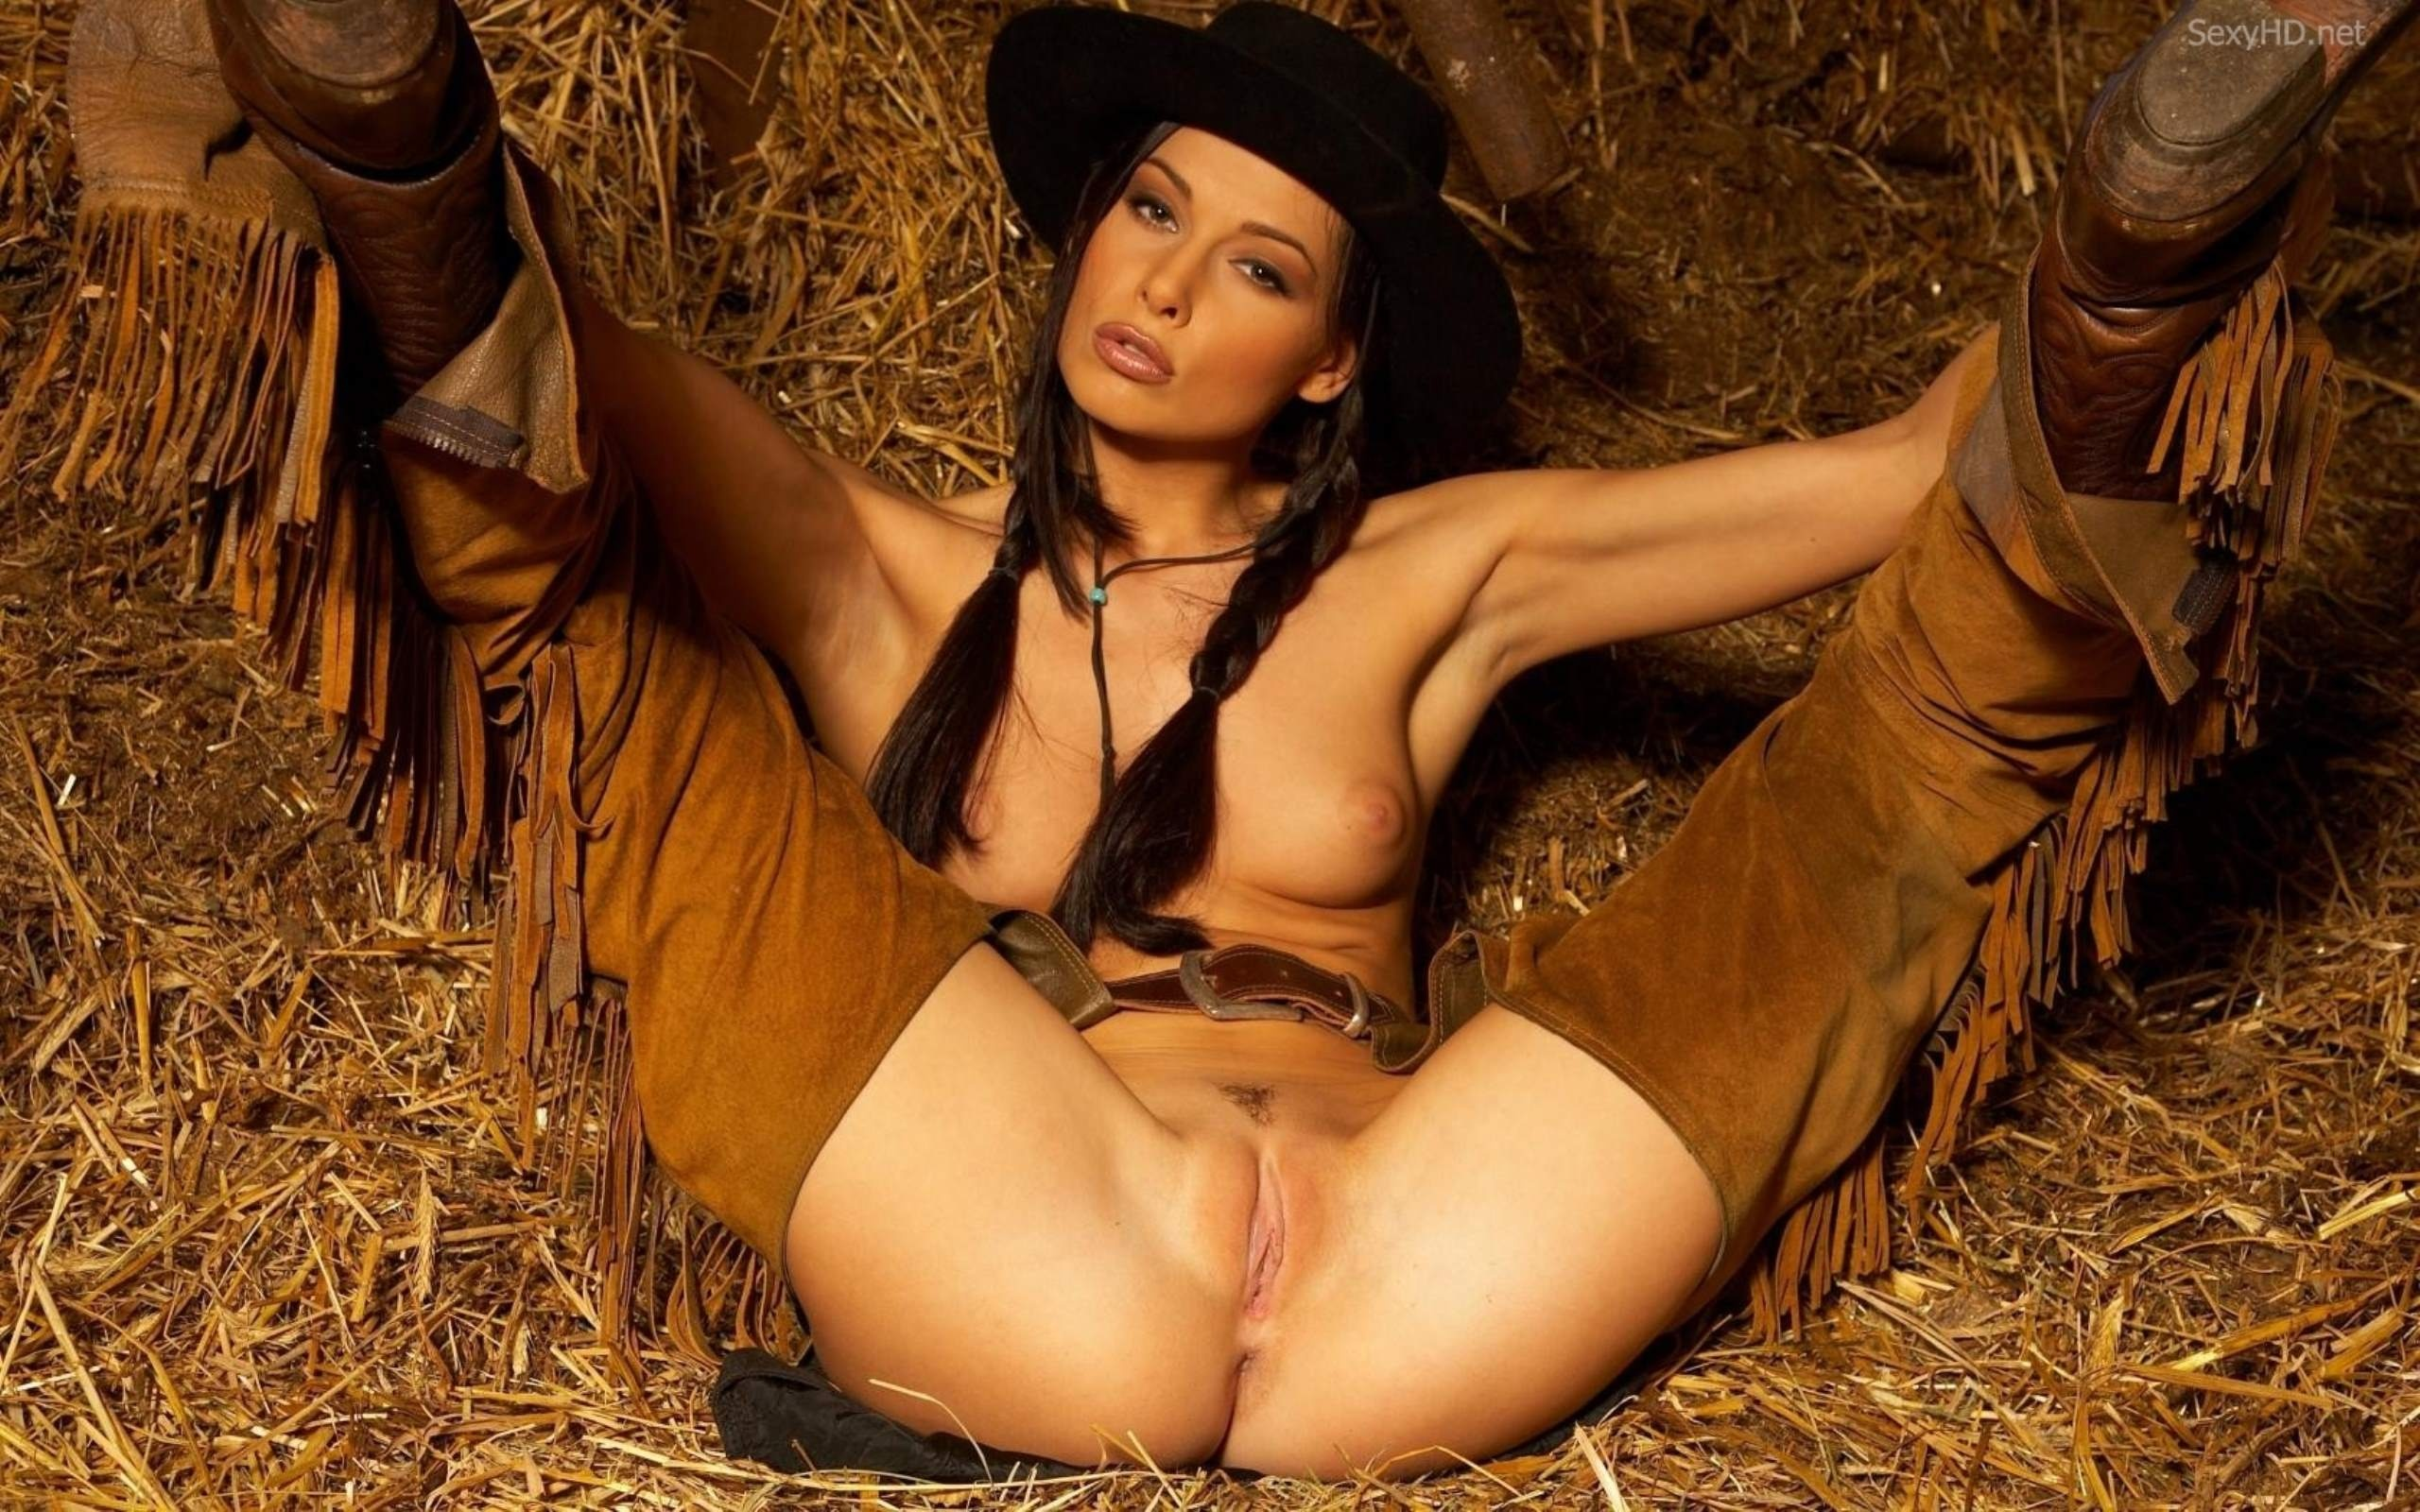 Hot nude cowgirl naked